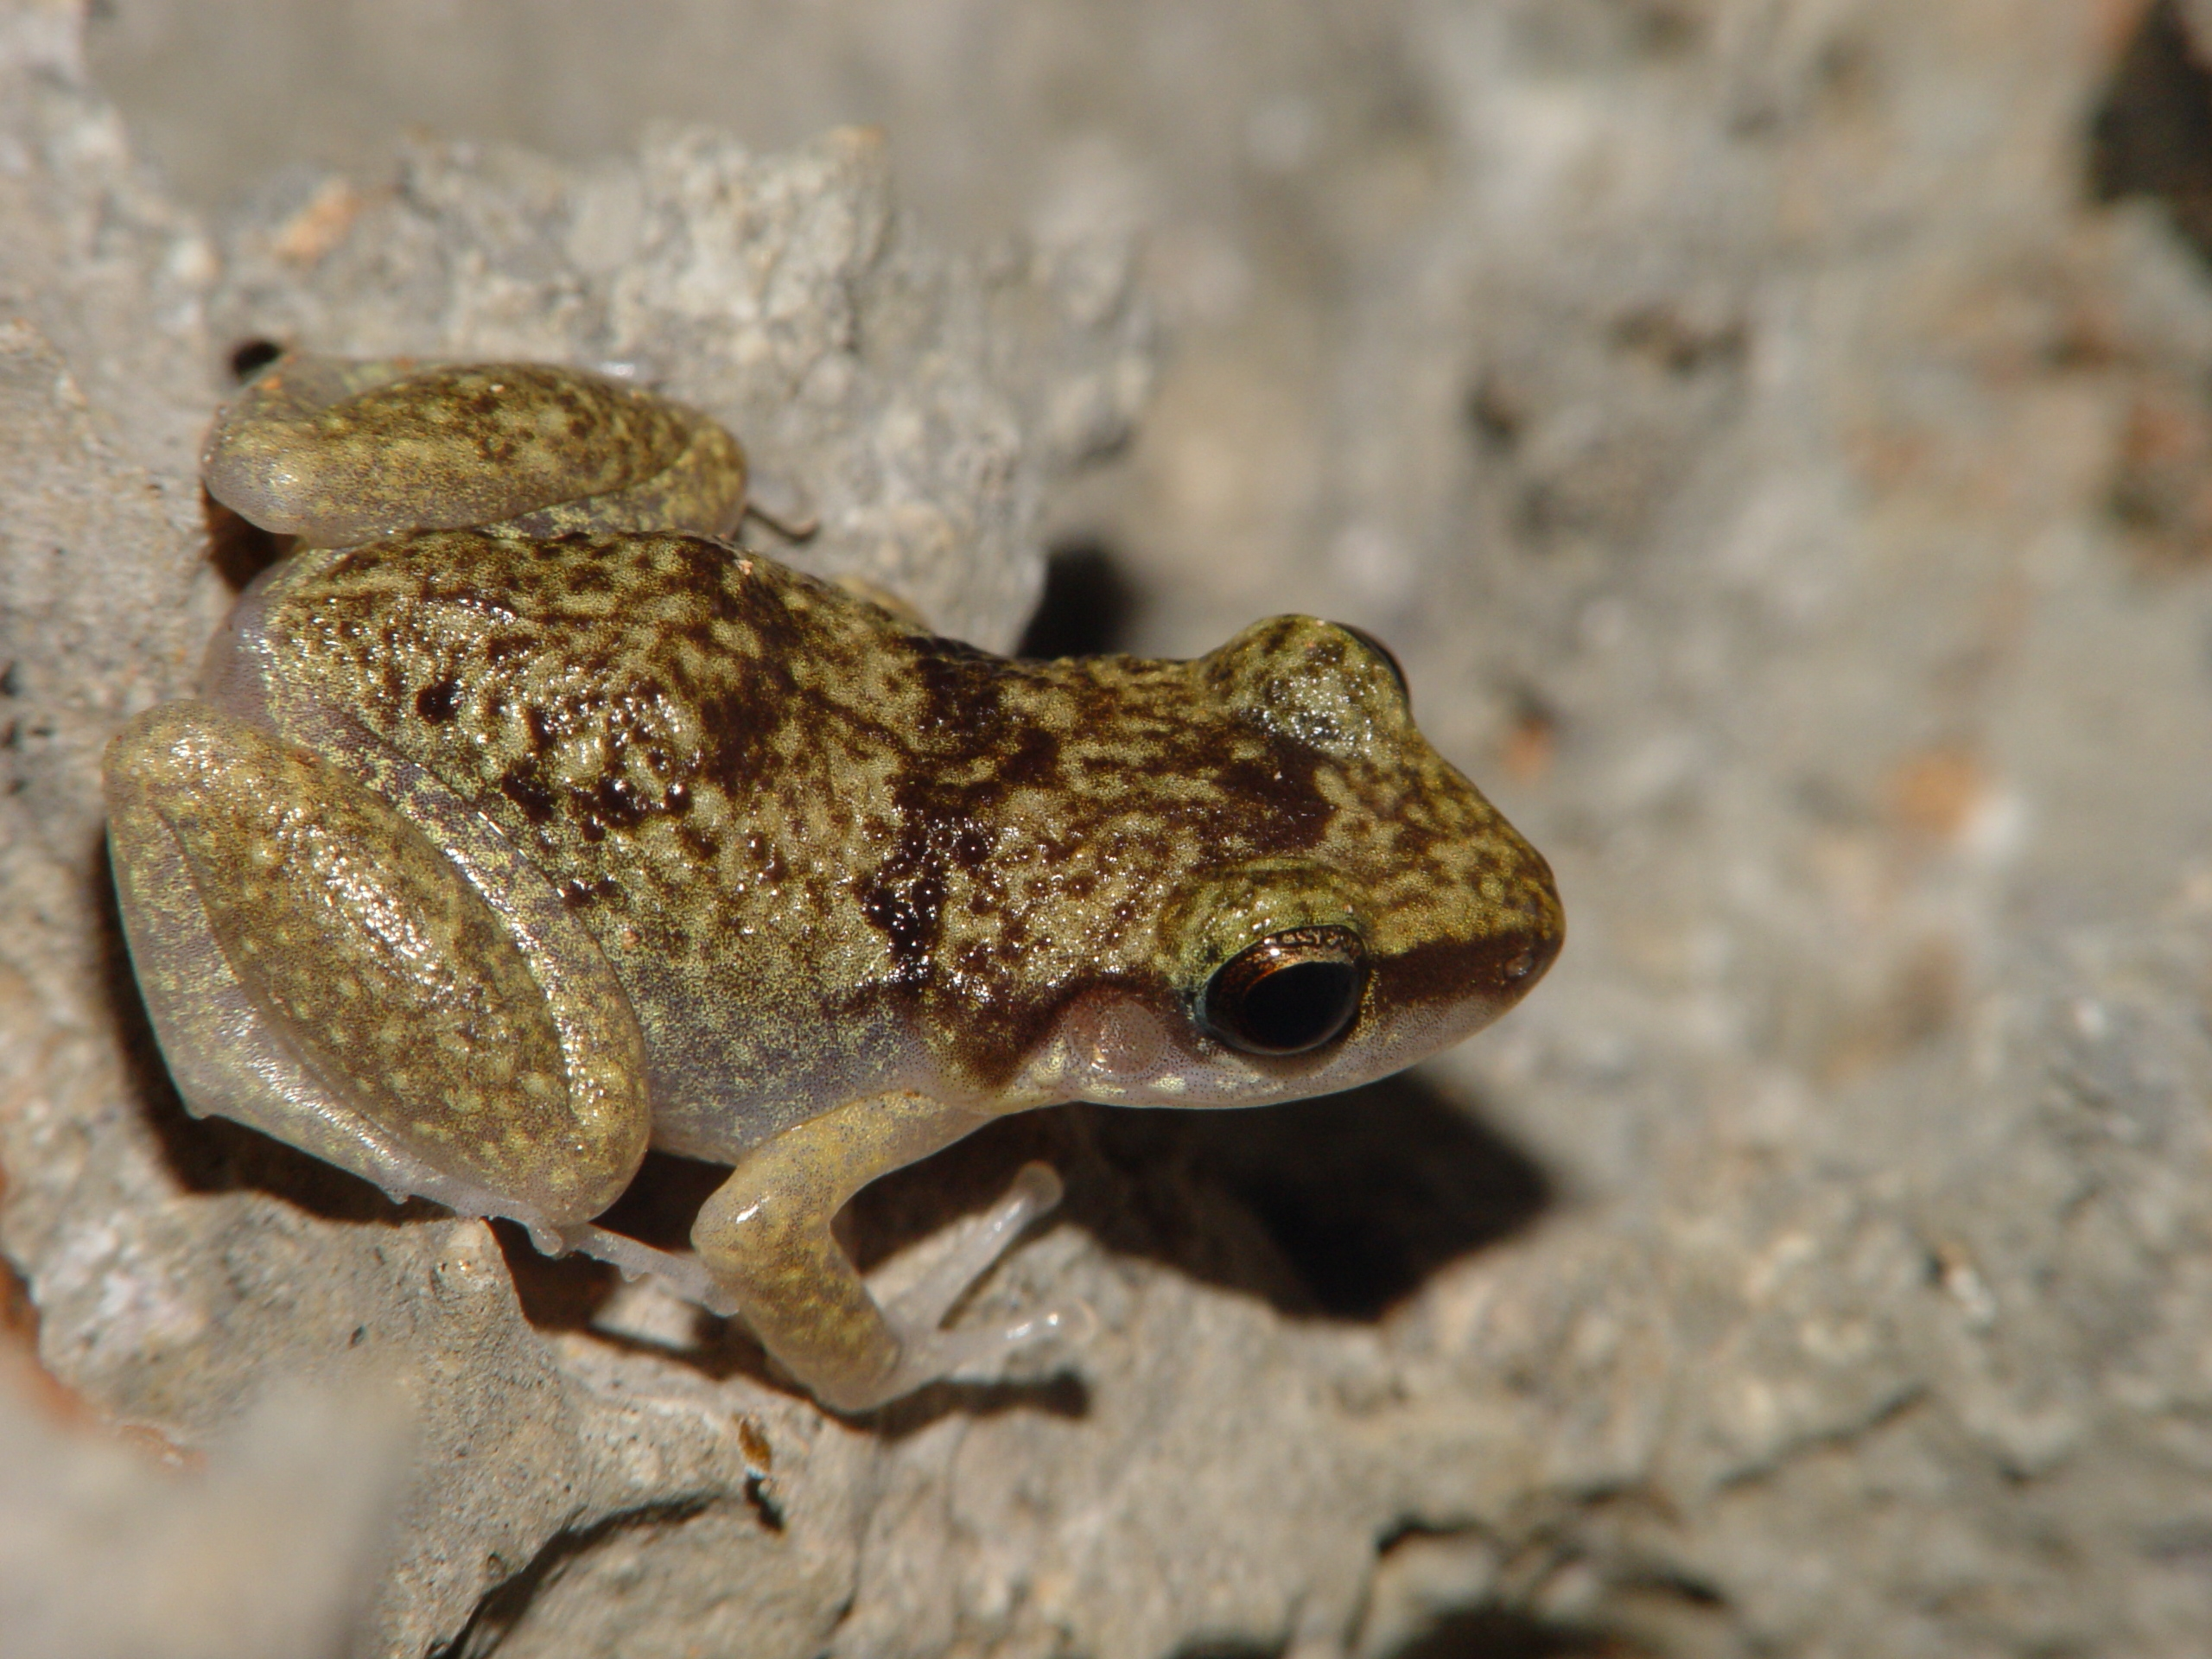 Etheridge's robber frog (Eleutherodactylus etheridgei)